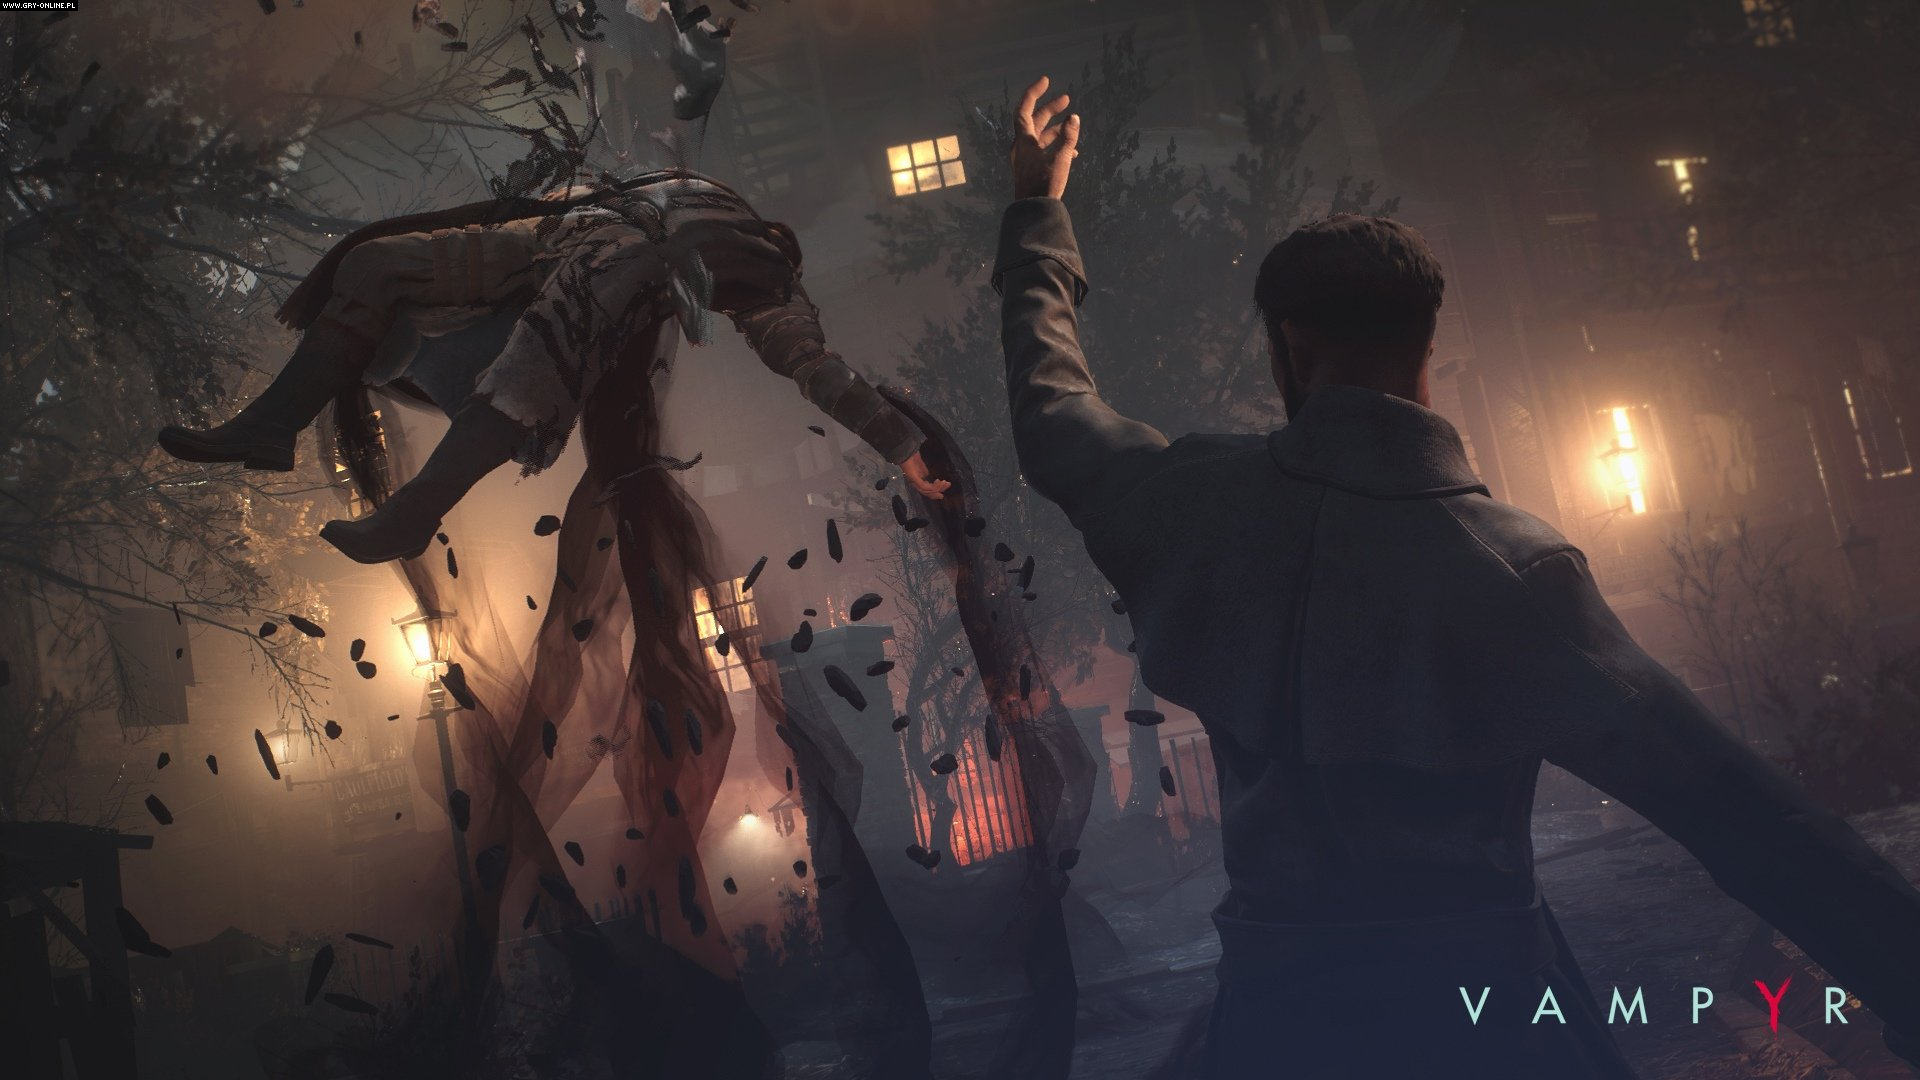 Vampyr PC, PS4, XONE Gry Screen 5/17, DONTNOD Entertainment, Focus Home Interactive